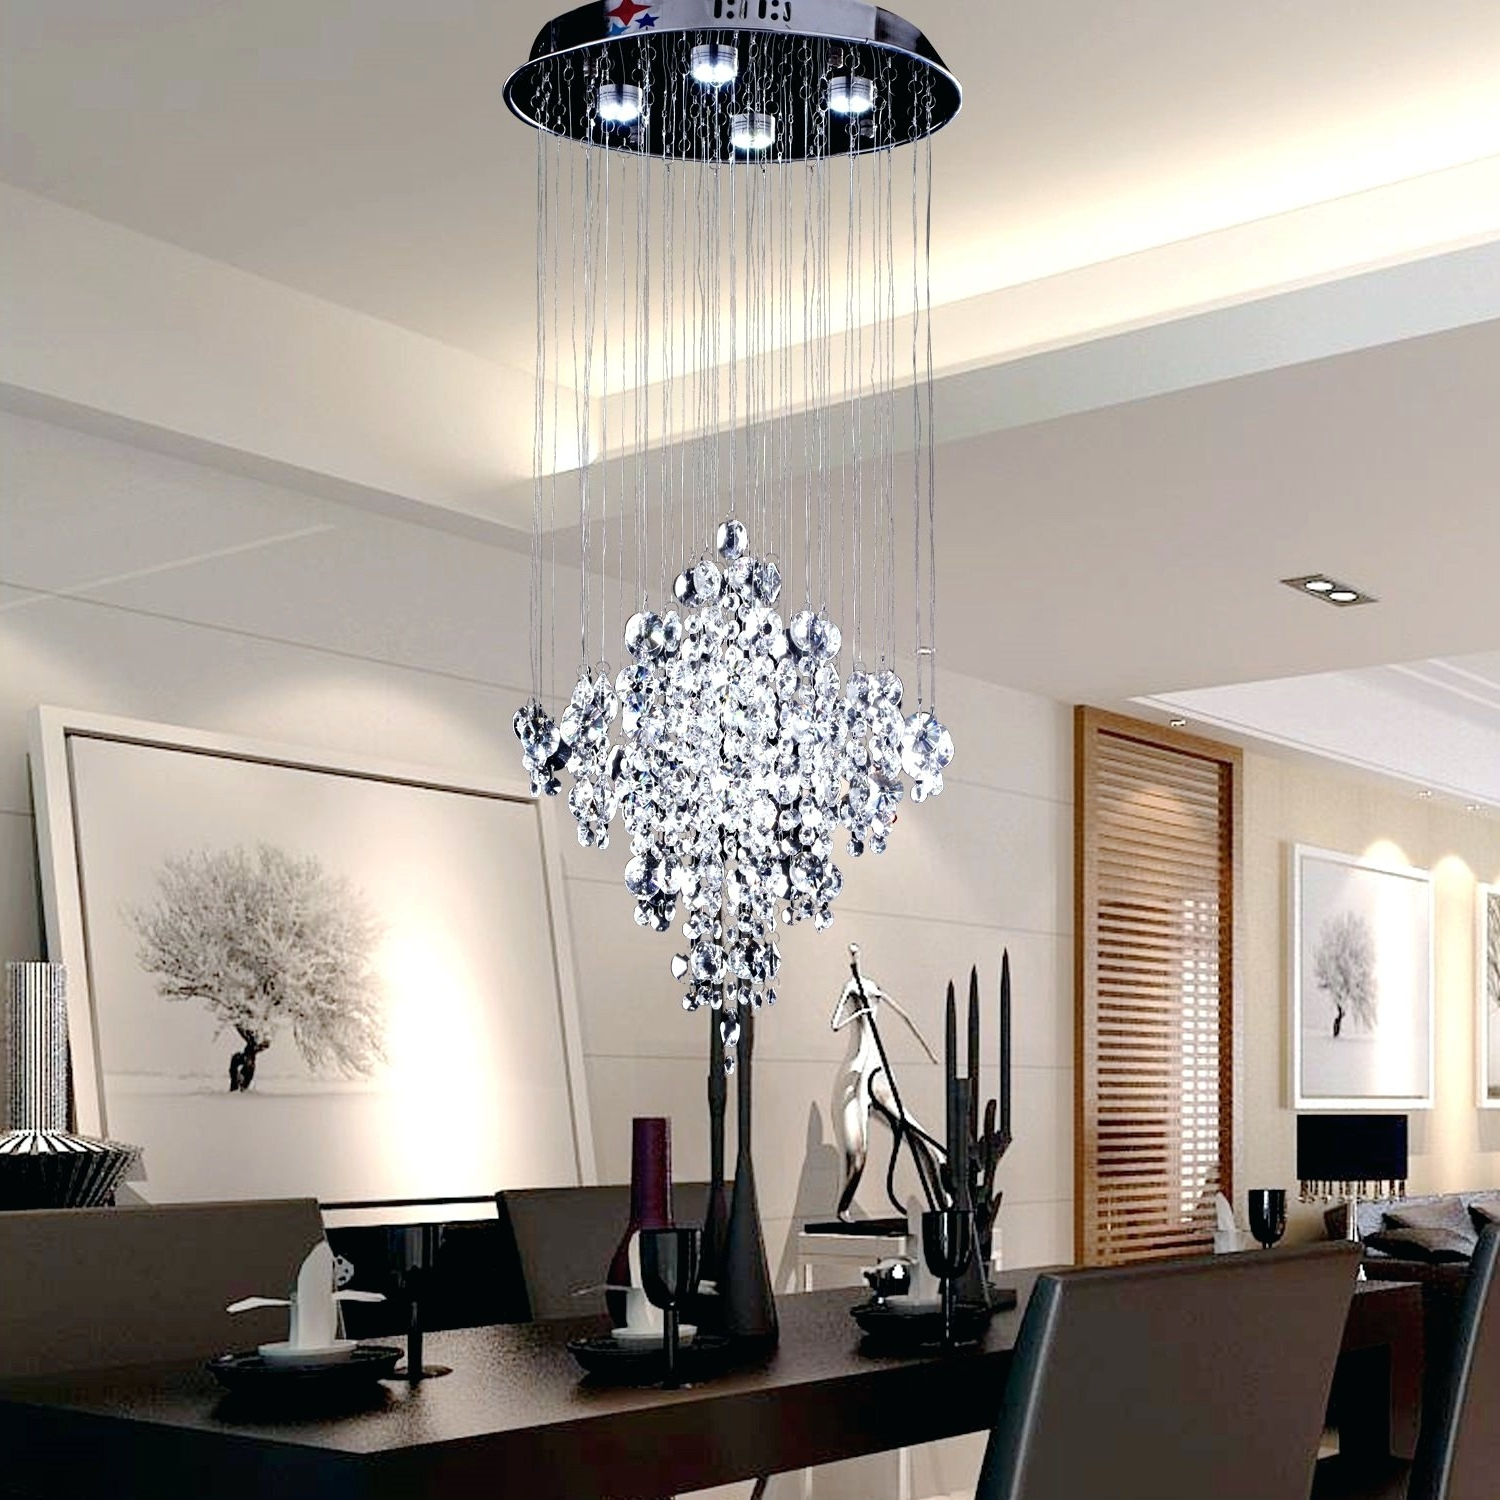 Preferred Large Modern Chandeliers Regarding Chandeliers Design : Fabulous Large Modern Chandeliers Contemporary (View 11 of 20)